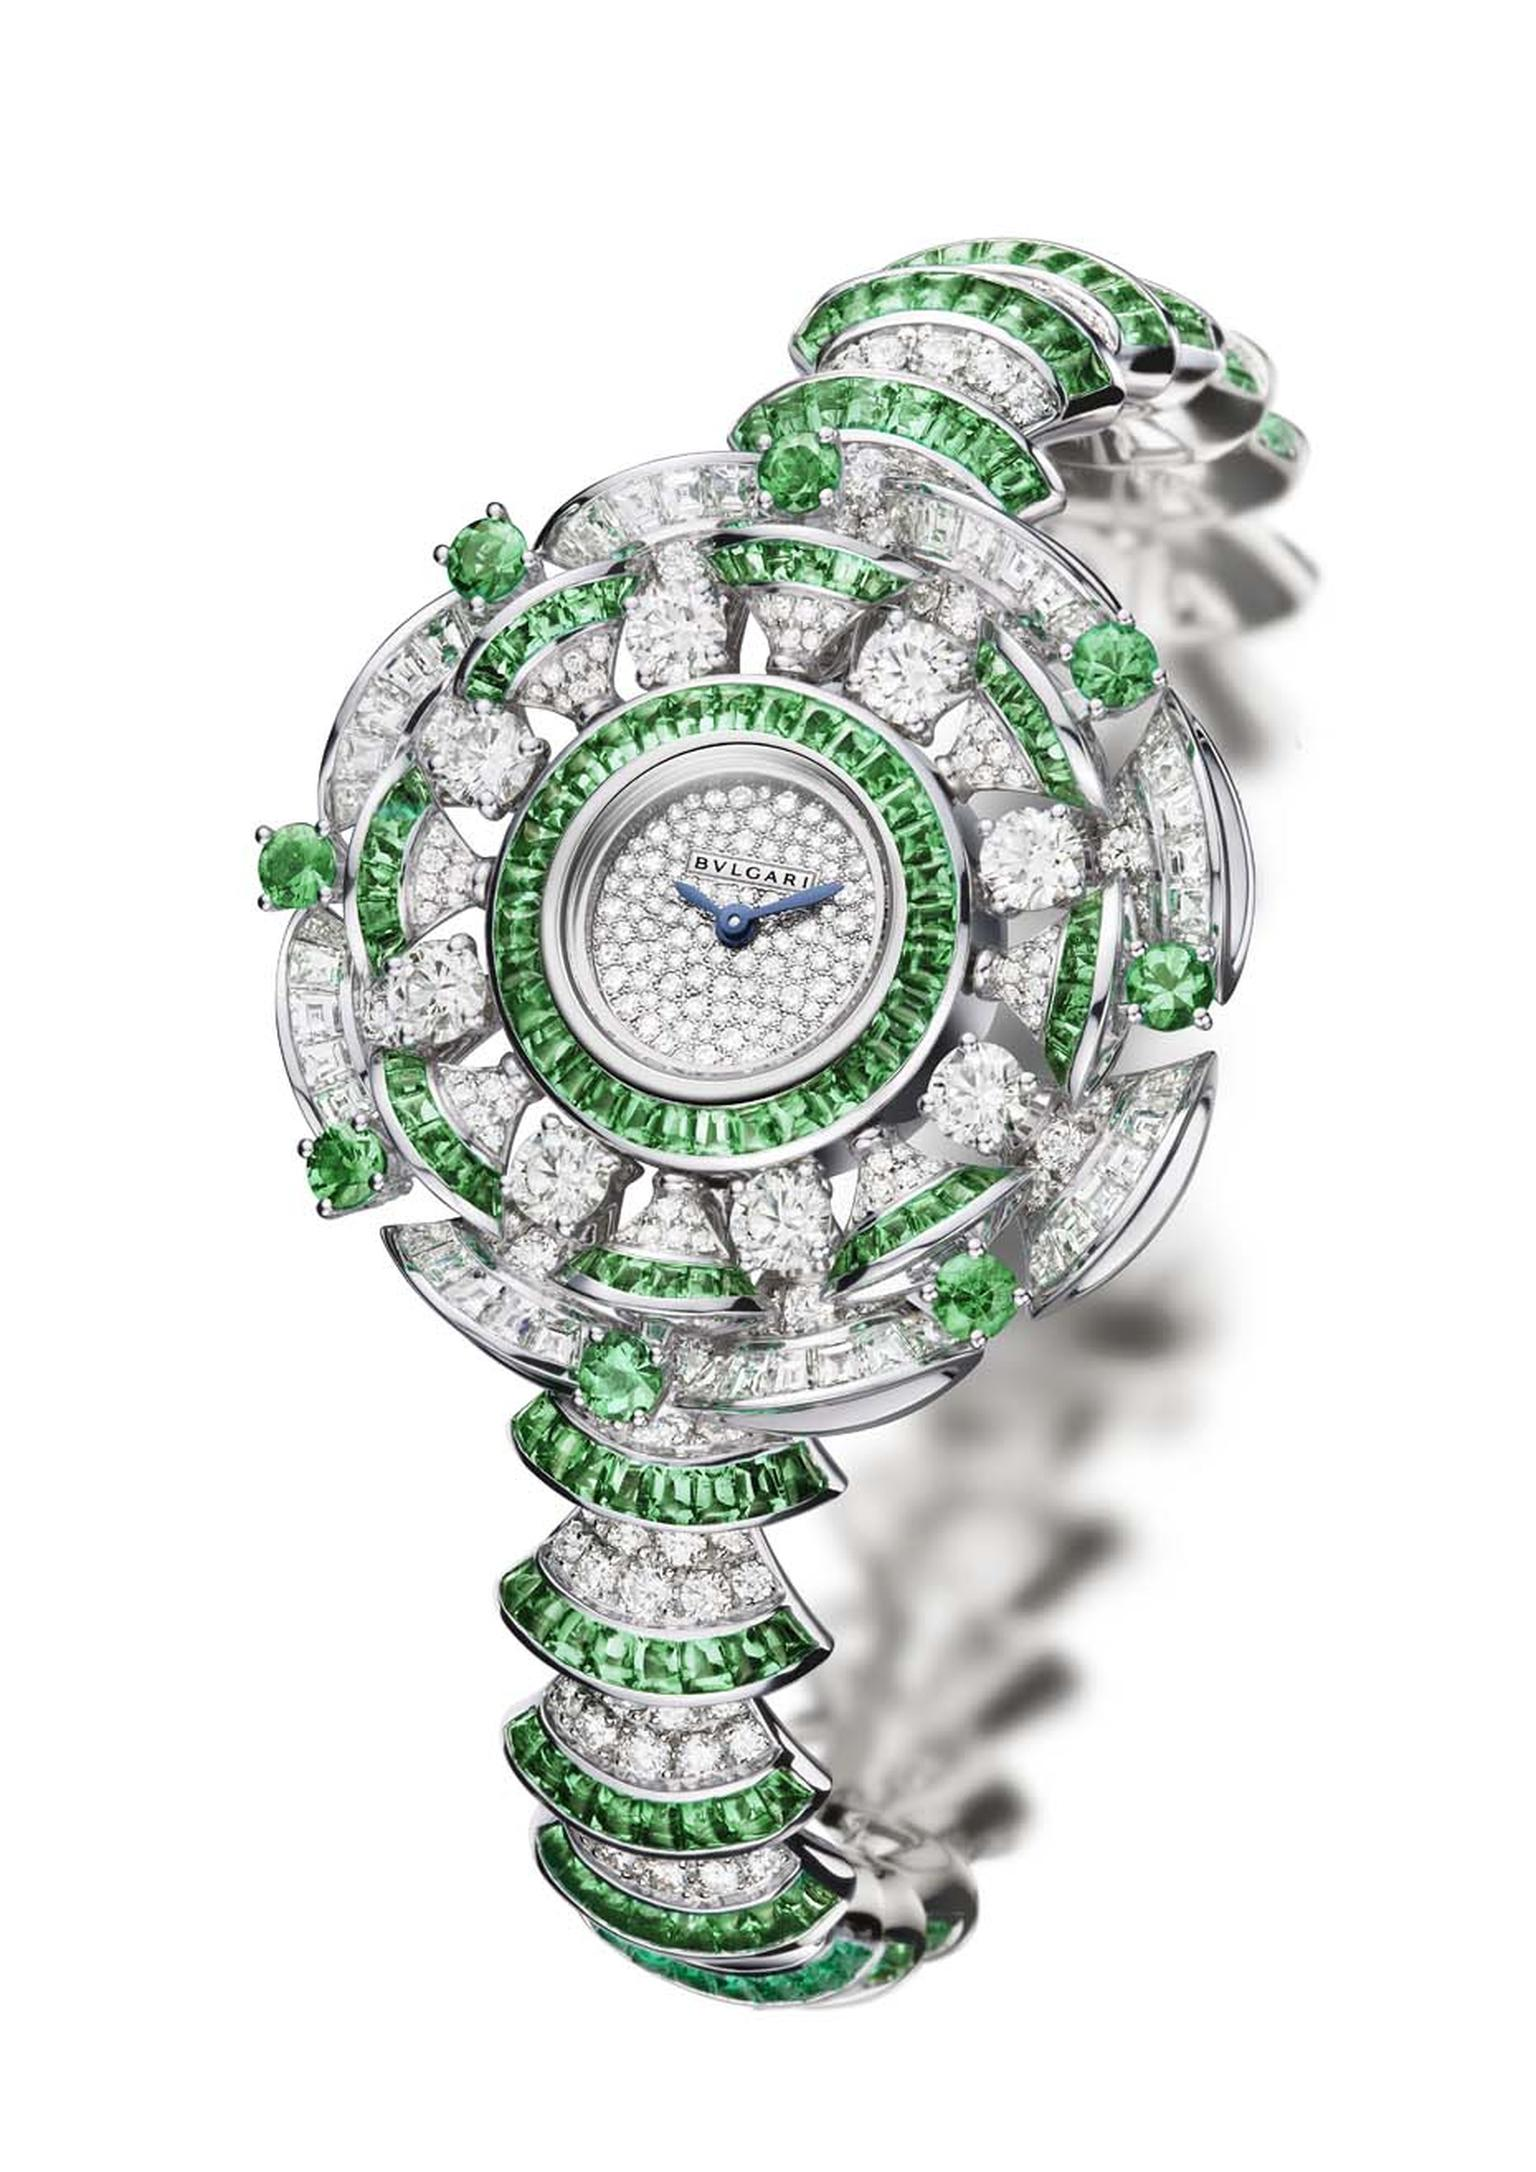 The newest version of the Bulgari Diva watch features a combination of diamonds and emeralds.